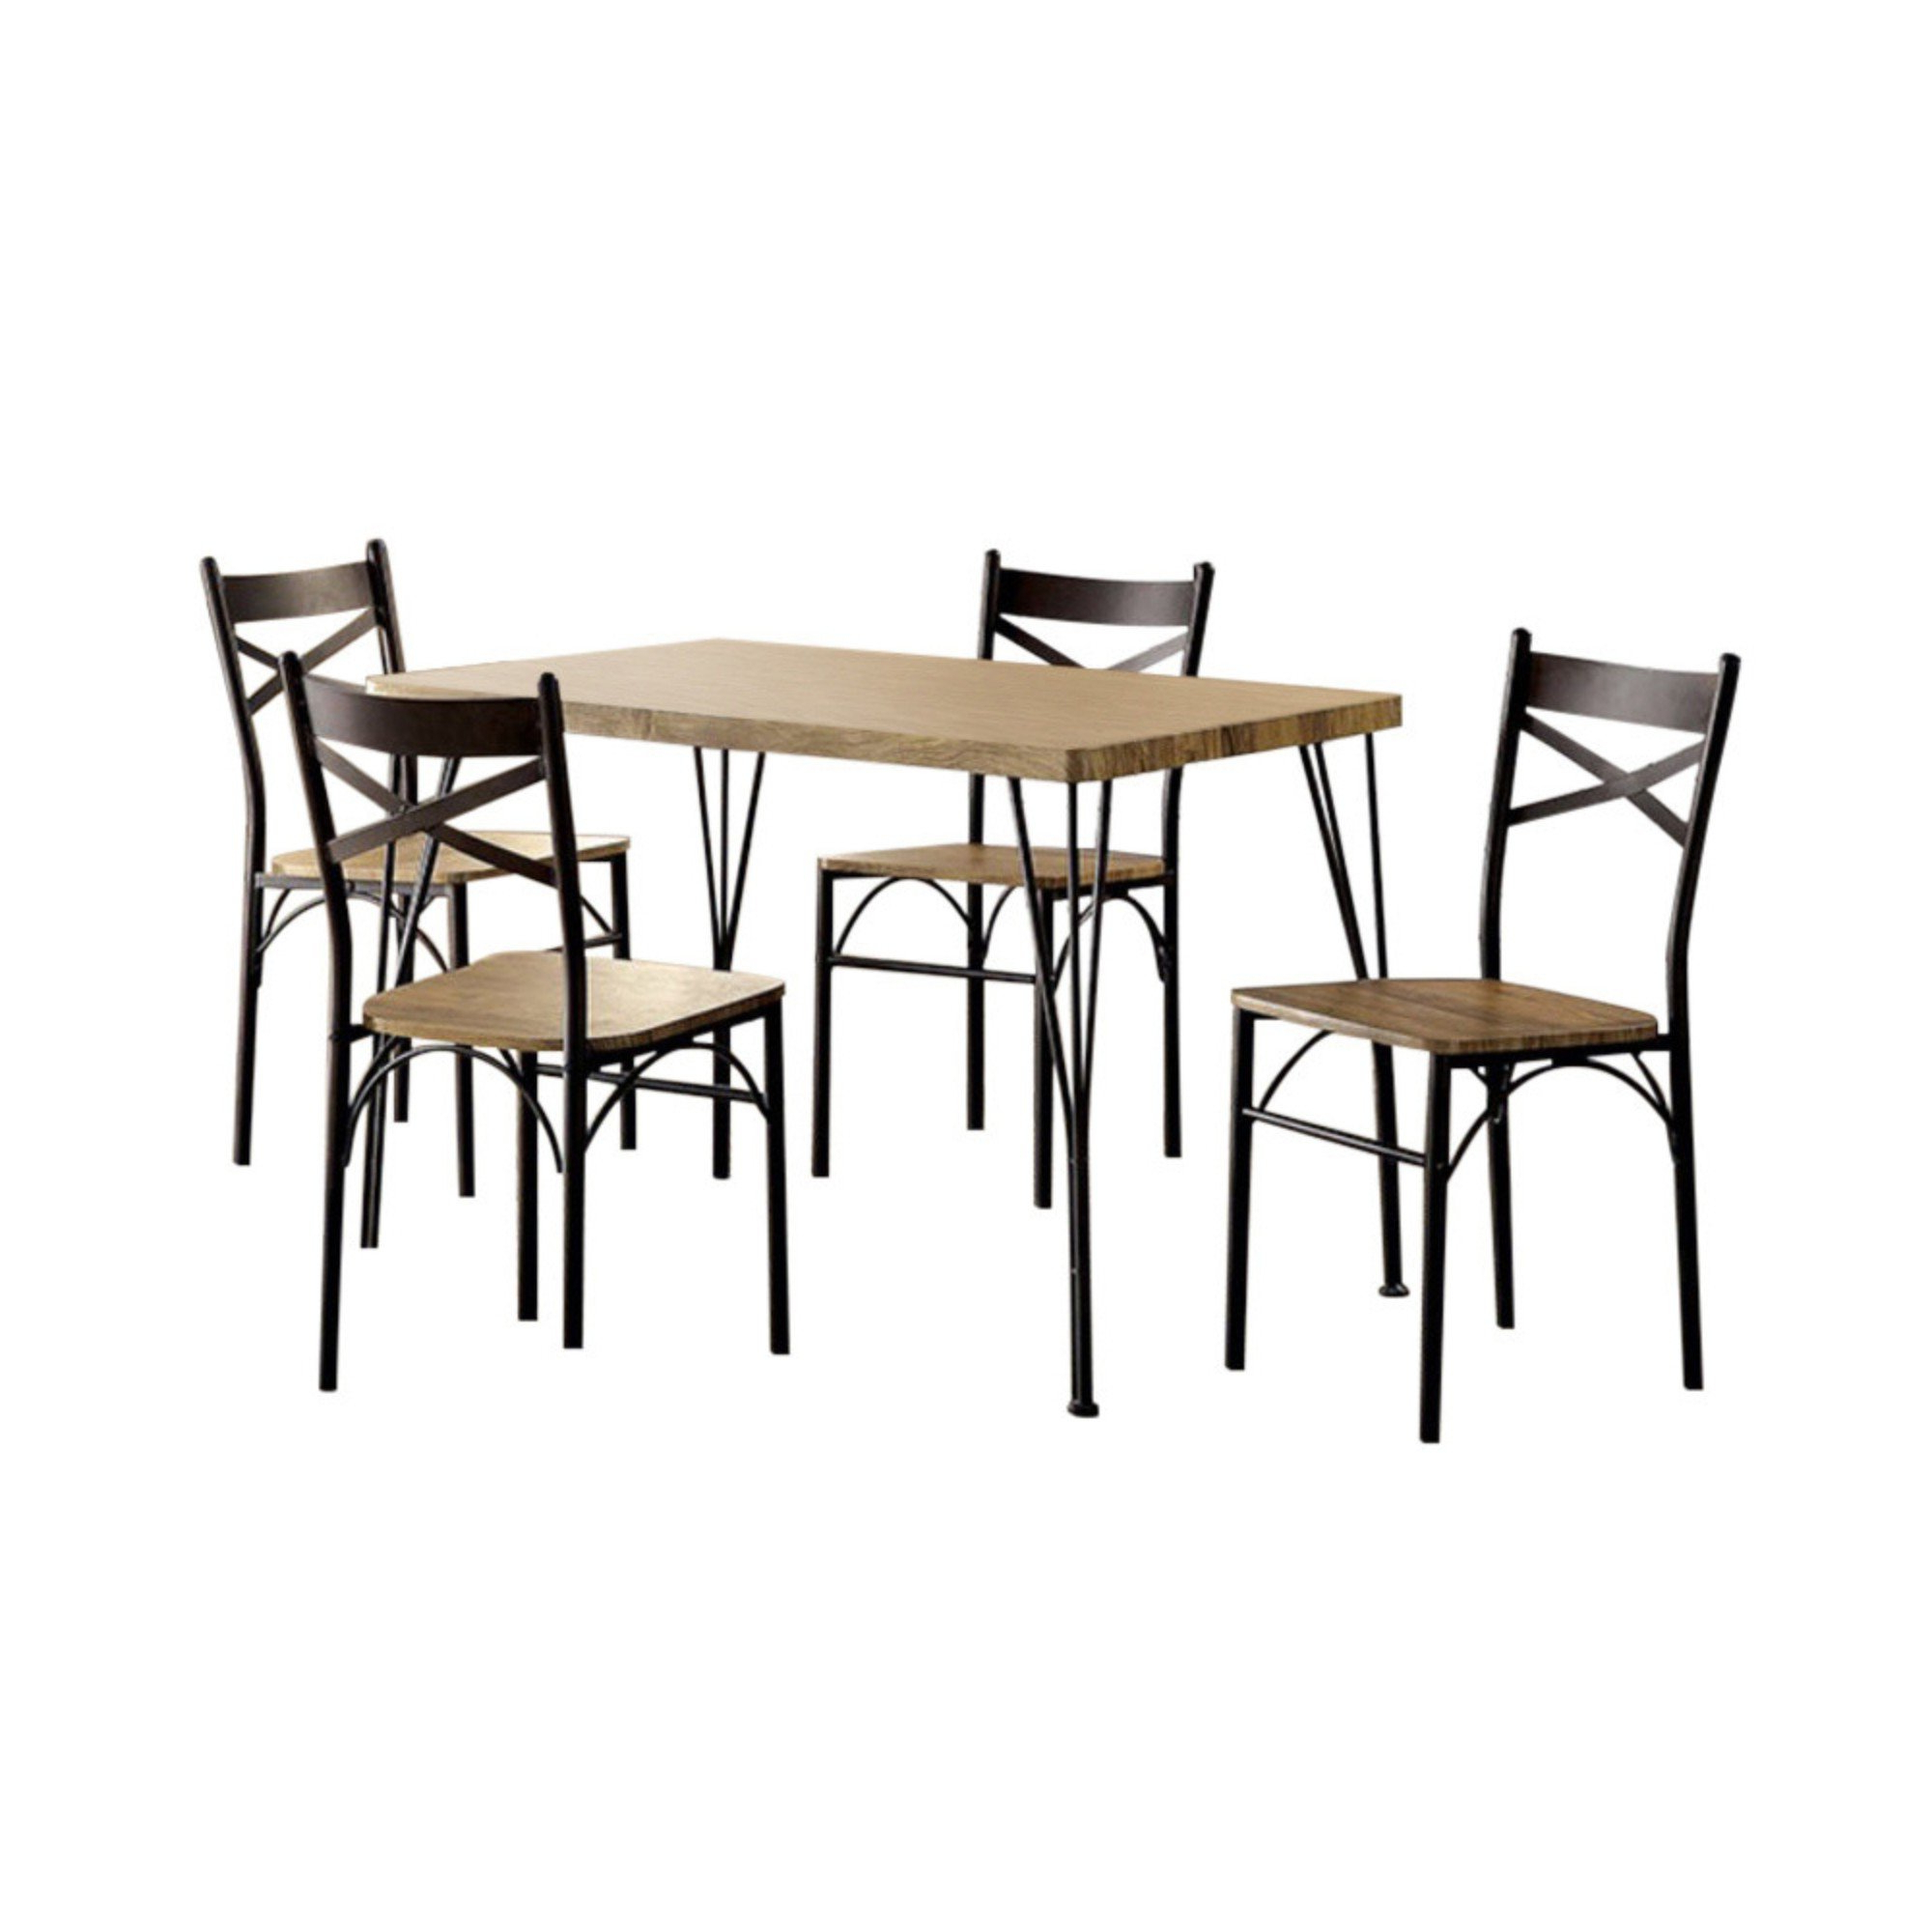 Wayfair Pertaining To Casiano 5 Piece Dining Sets (View 23 of 25)